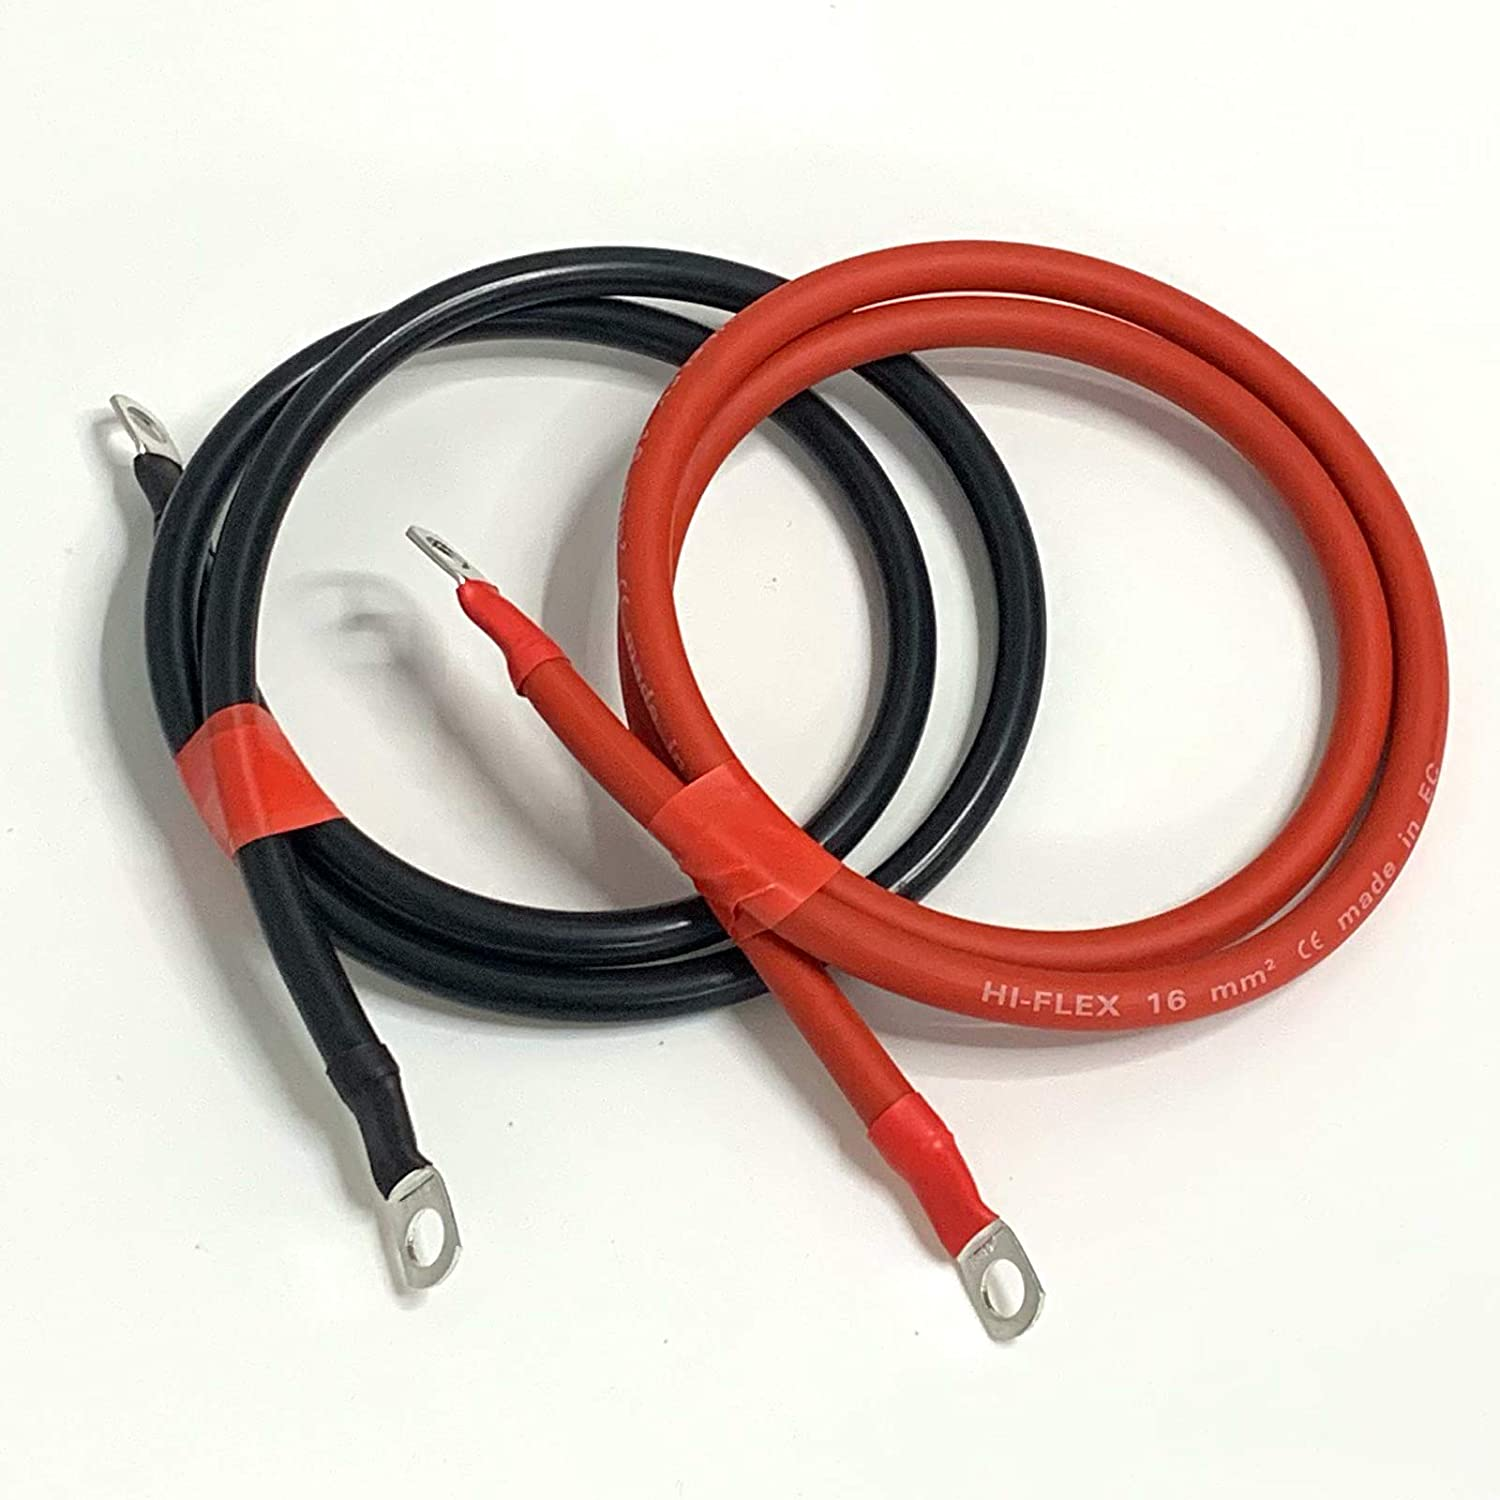 Red Lead Set 110A Amp 16mm2 Cable Wire with M10 Ring Terminals 1ft Set, 10mm Ring Terminals 30cm Battery Lead//Black